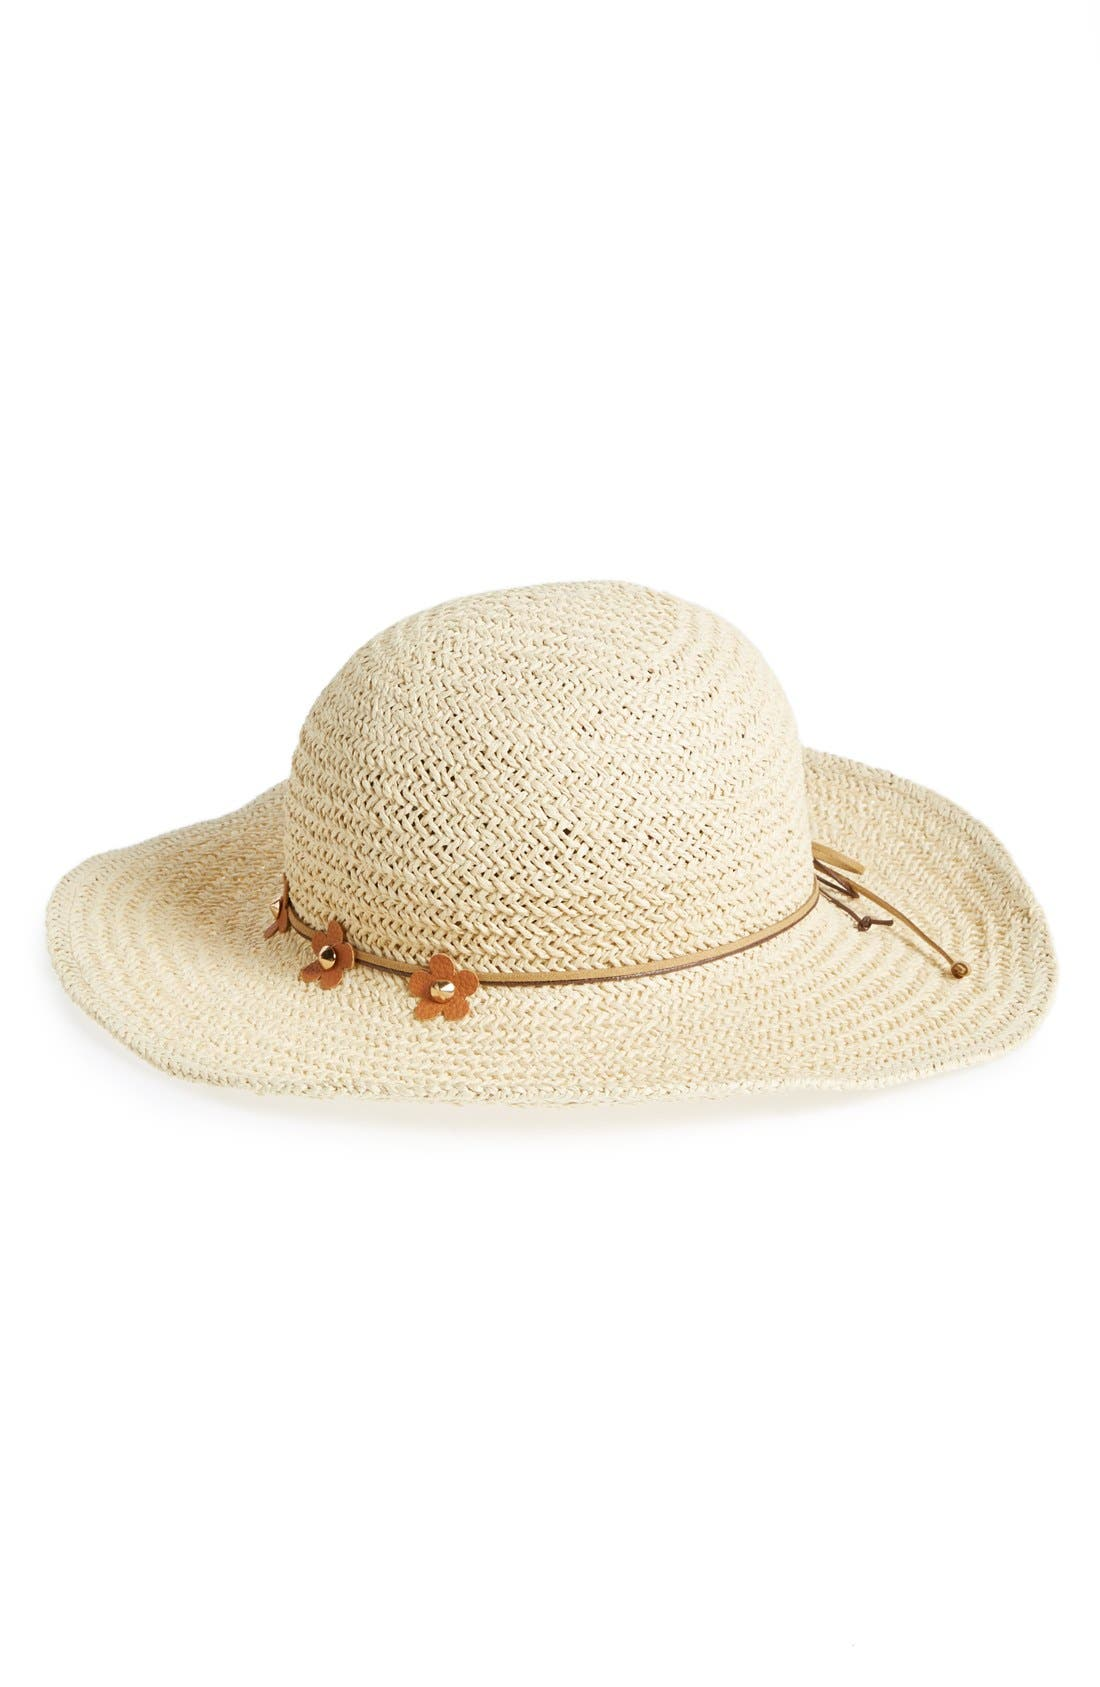 Main Image - David & Young Floppy Straw Hat with Floral Band